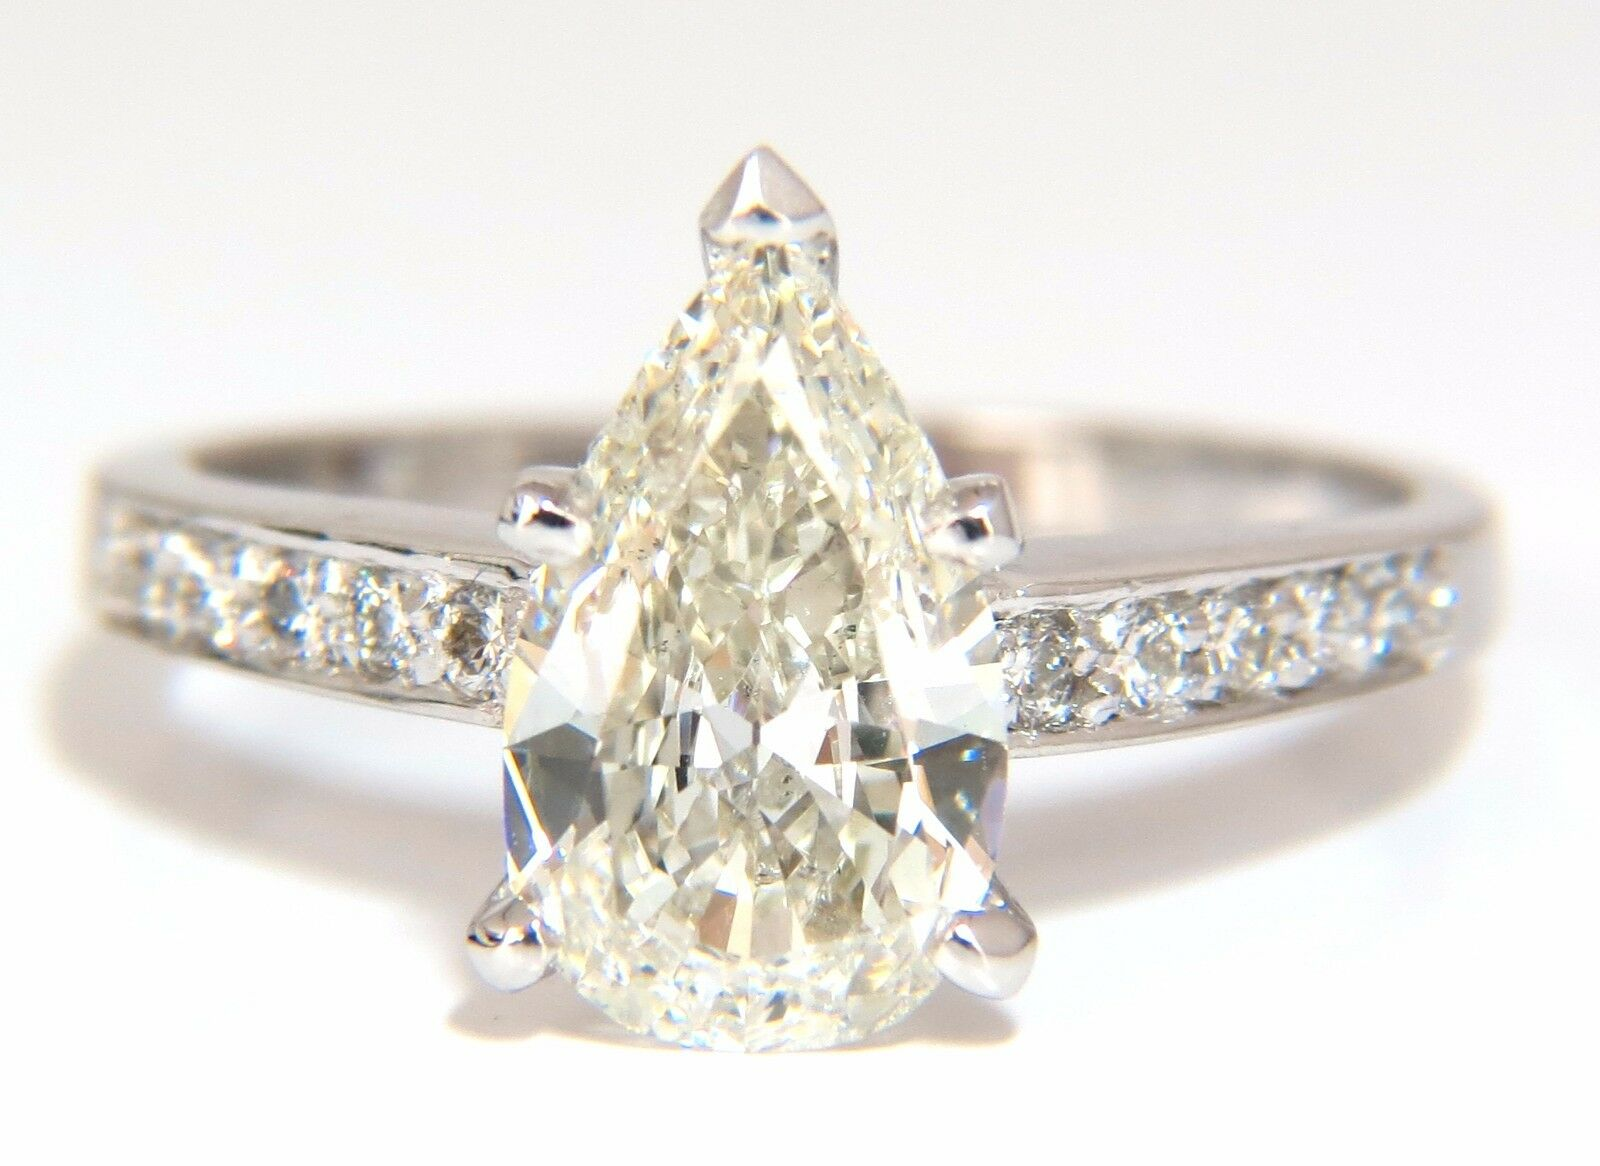 GIA Certified 1.49ct Pear Shape diamond ring .20ct. round accents 14kt 4